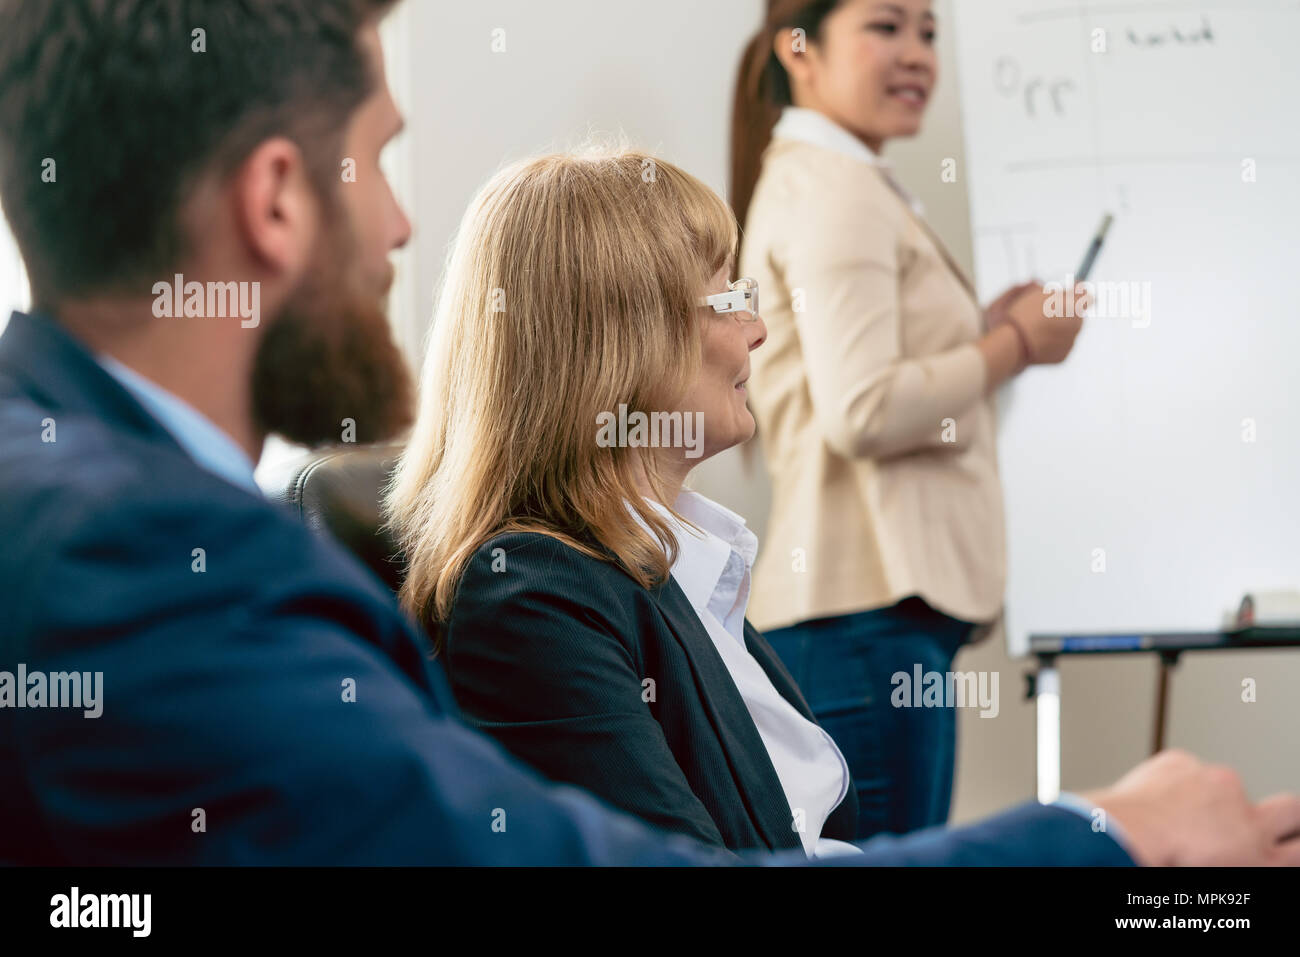 Middle-aged business woman presenting her opinion during a meeting - Stock Image